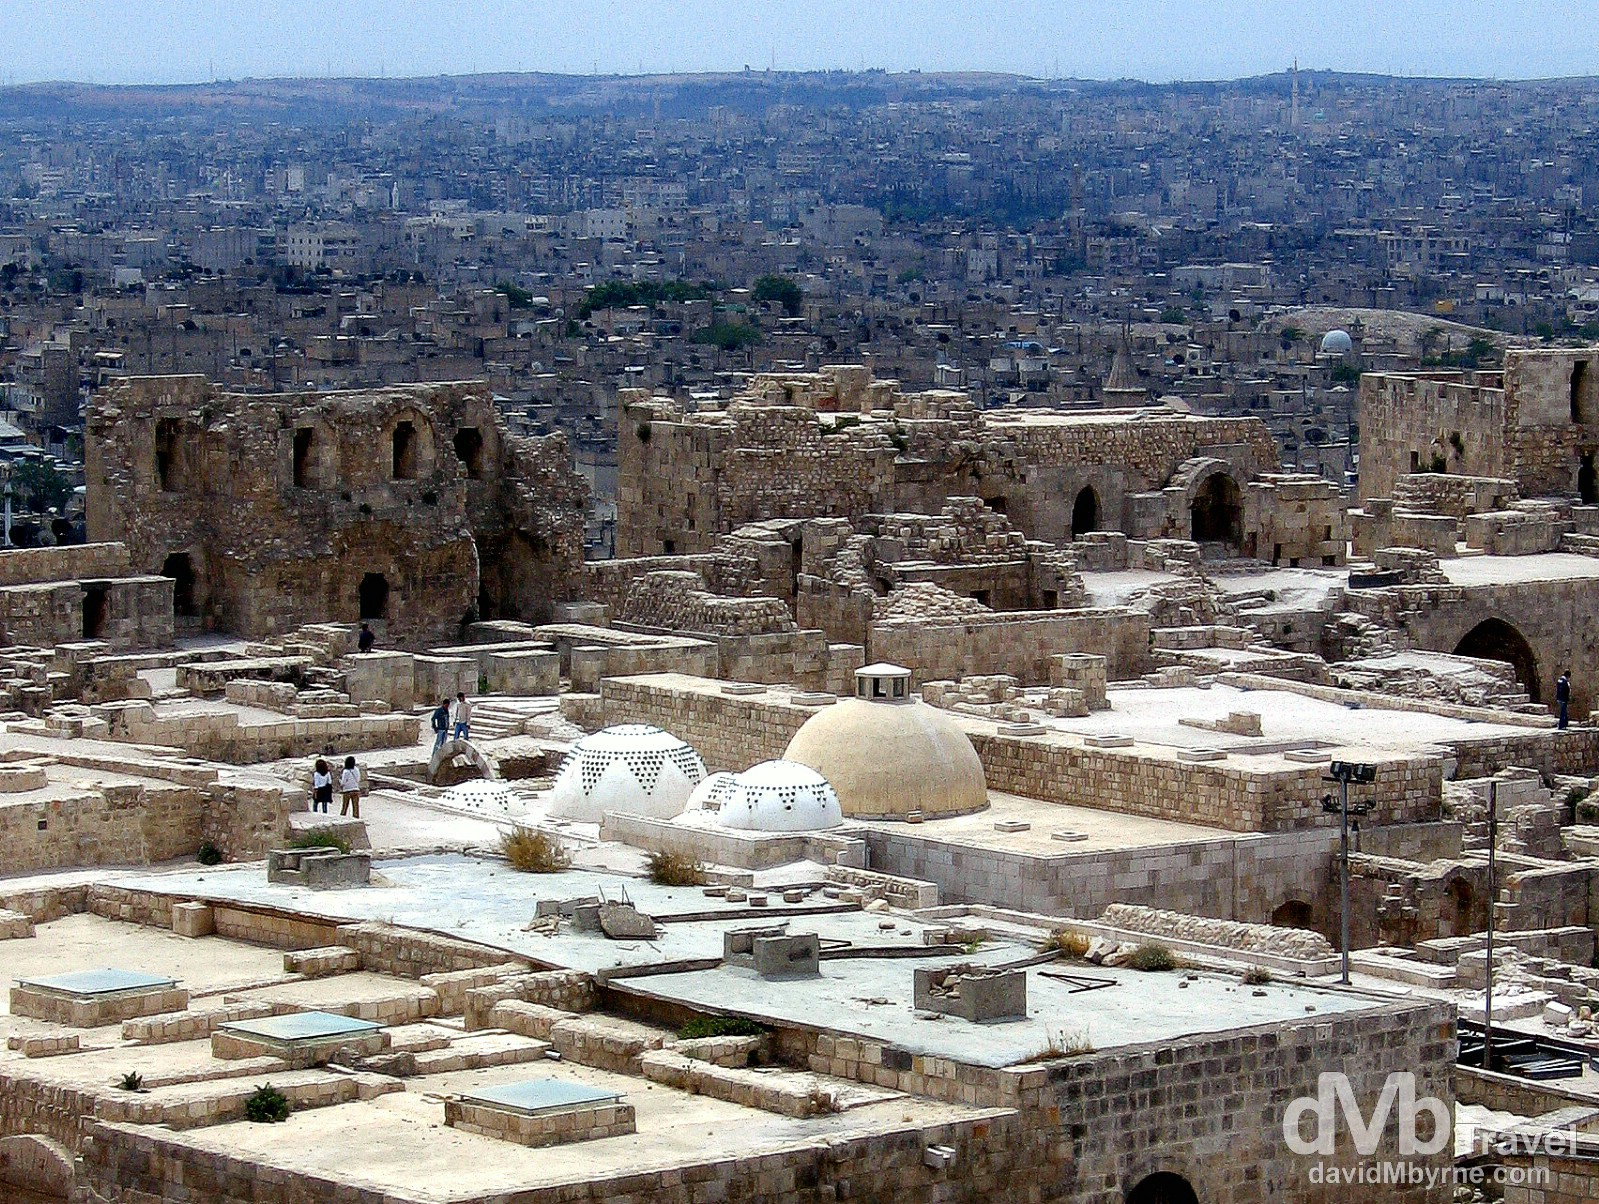 A section of the fort in Aleppo, Syria. May 9, 2008.